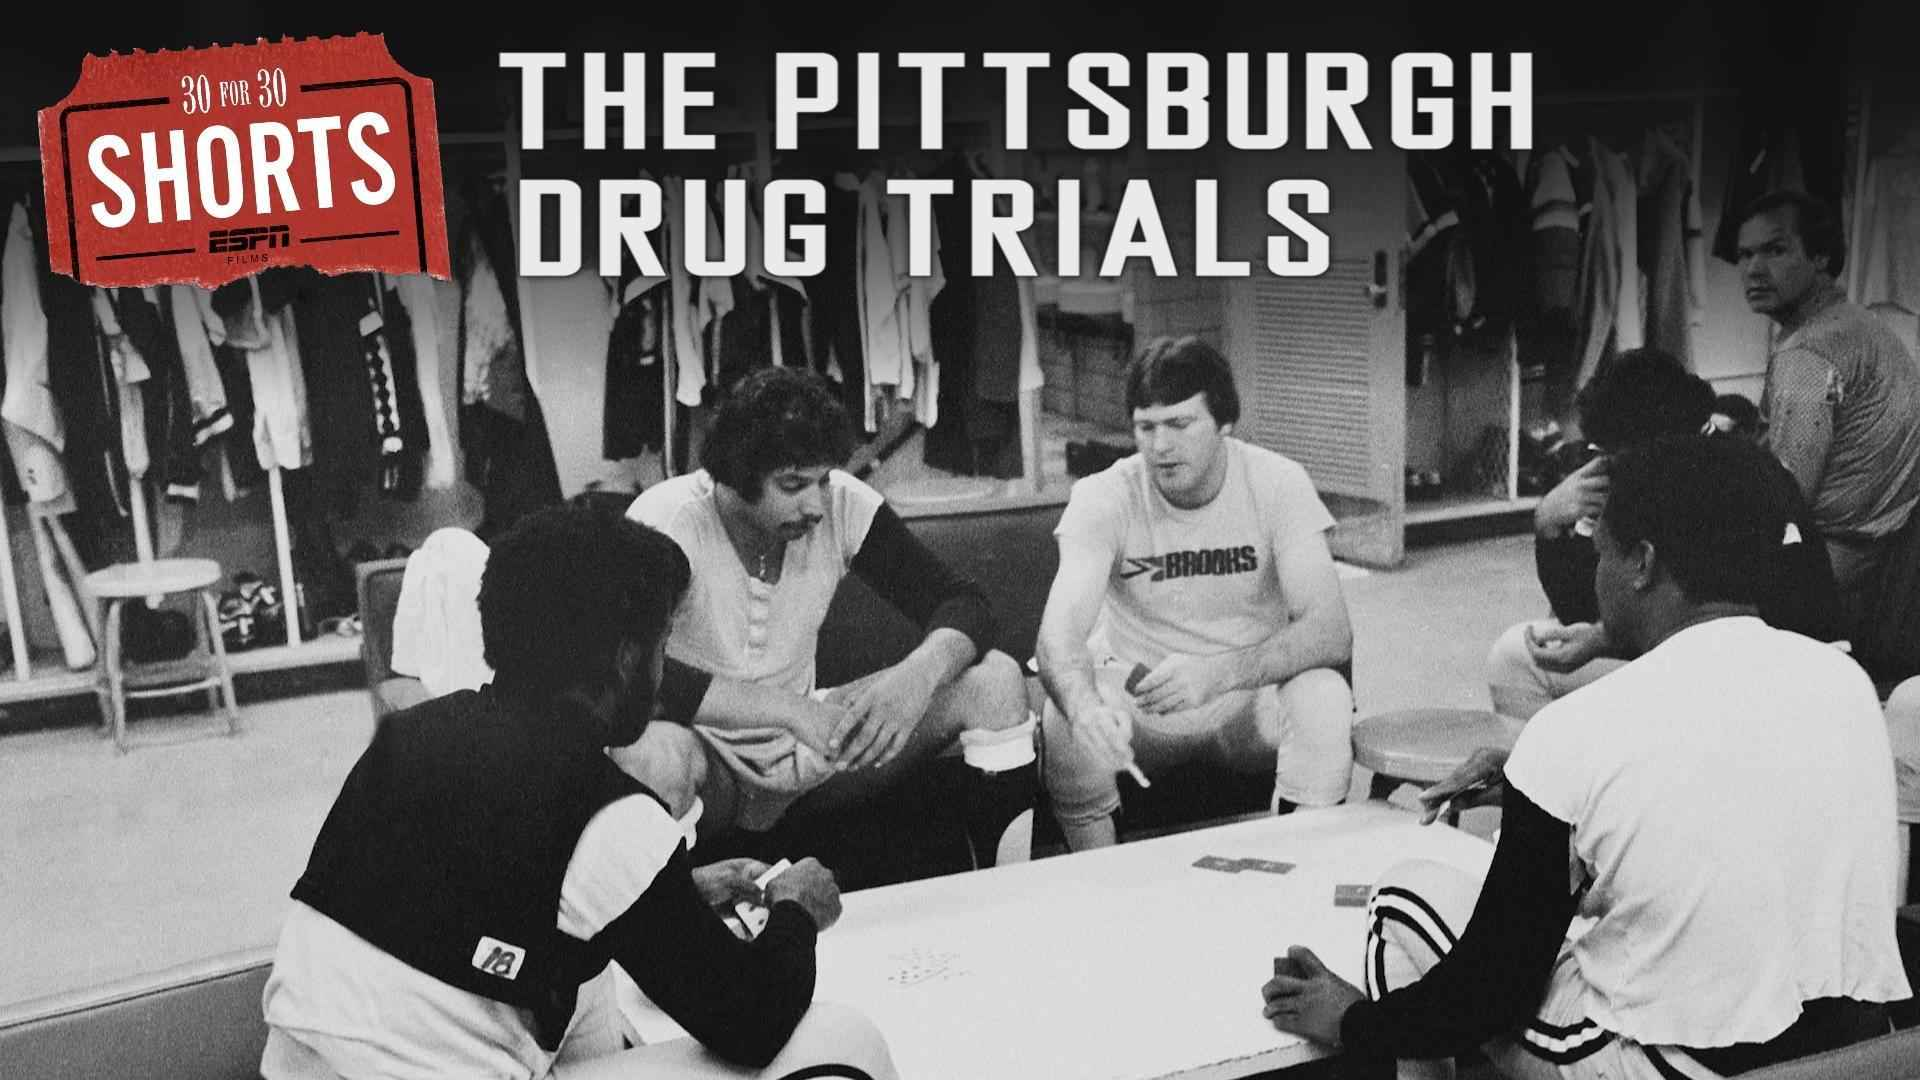 30 for 30 shorts arnolds blueprint watchespn 30 for 30 shorts the pittsburgh drug trials malvernweather Images